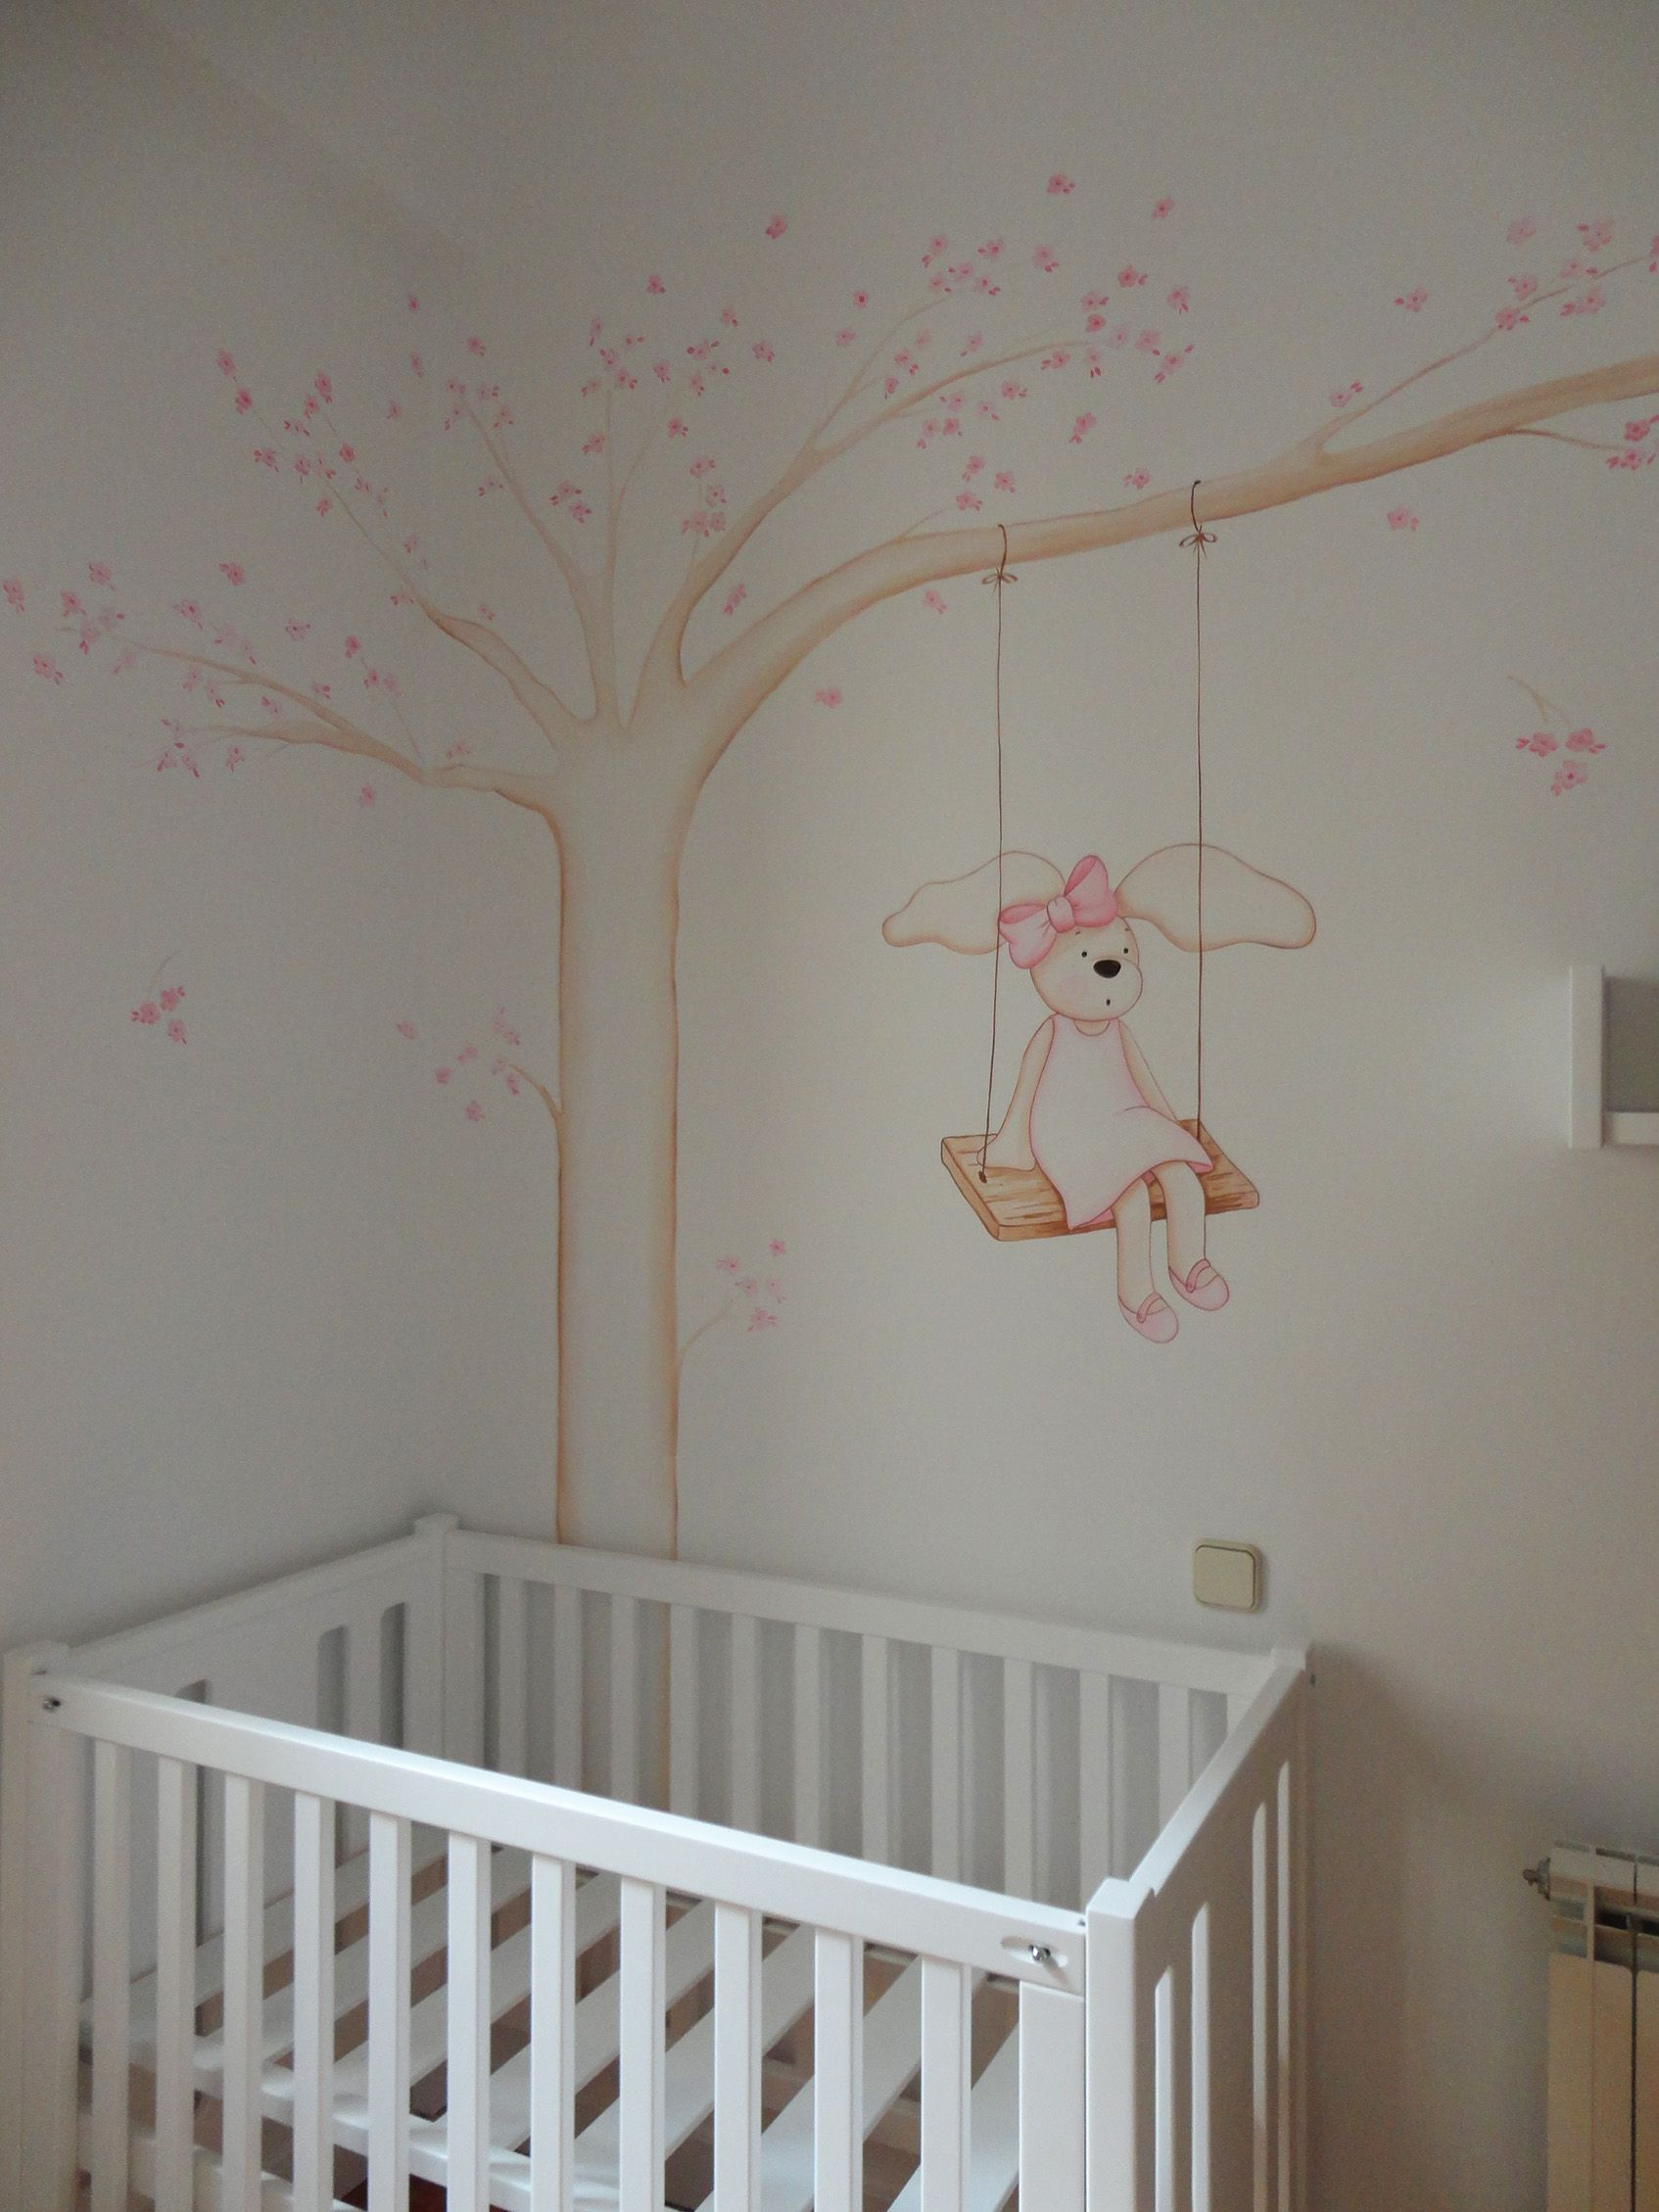 Arbol pintado en la pared para bebes murales infantiles for Decoracion pared bebes